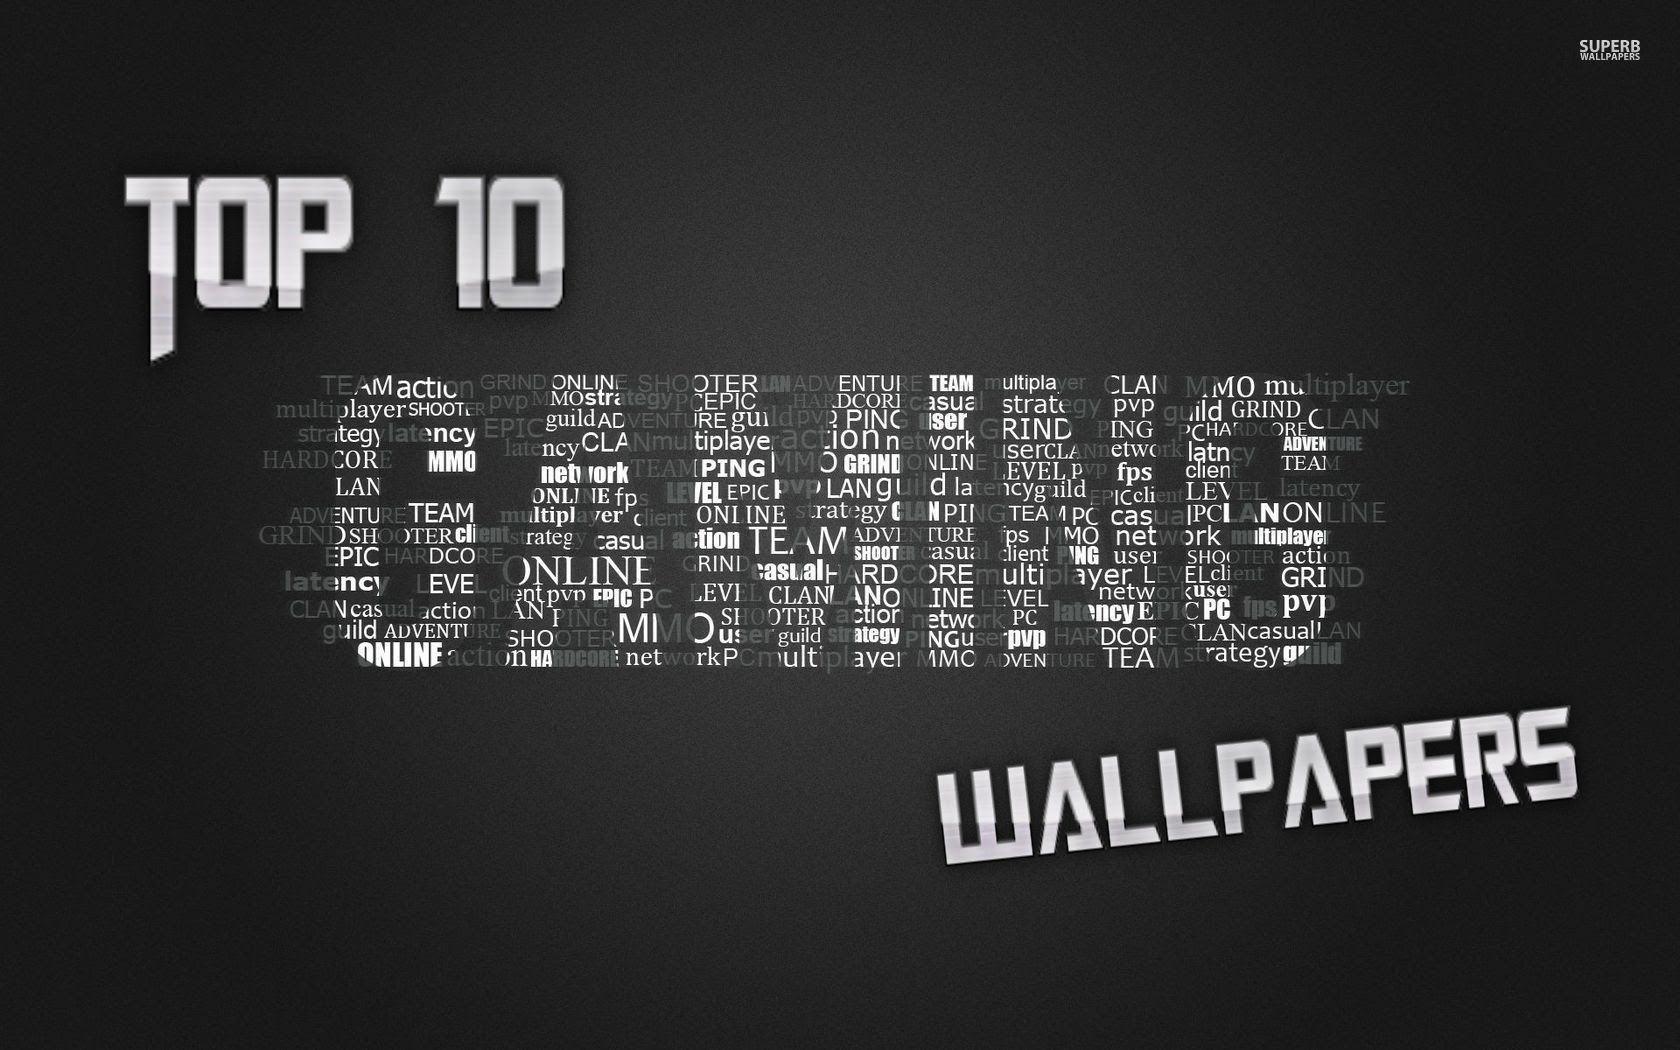 1680x1050 Top 10 Gaming Wallpapers! - YouTube